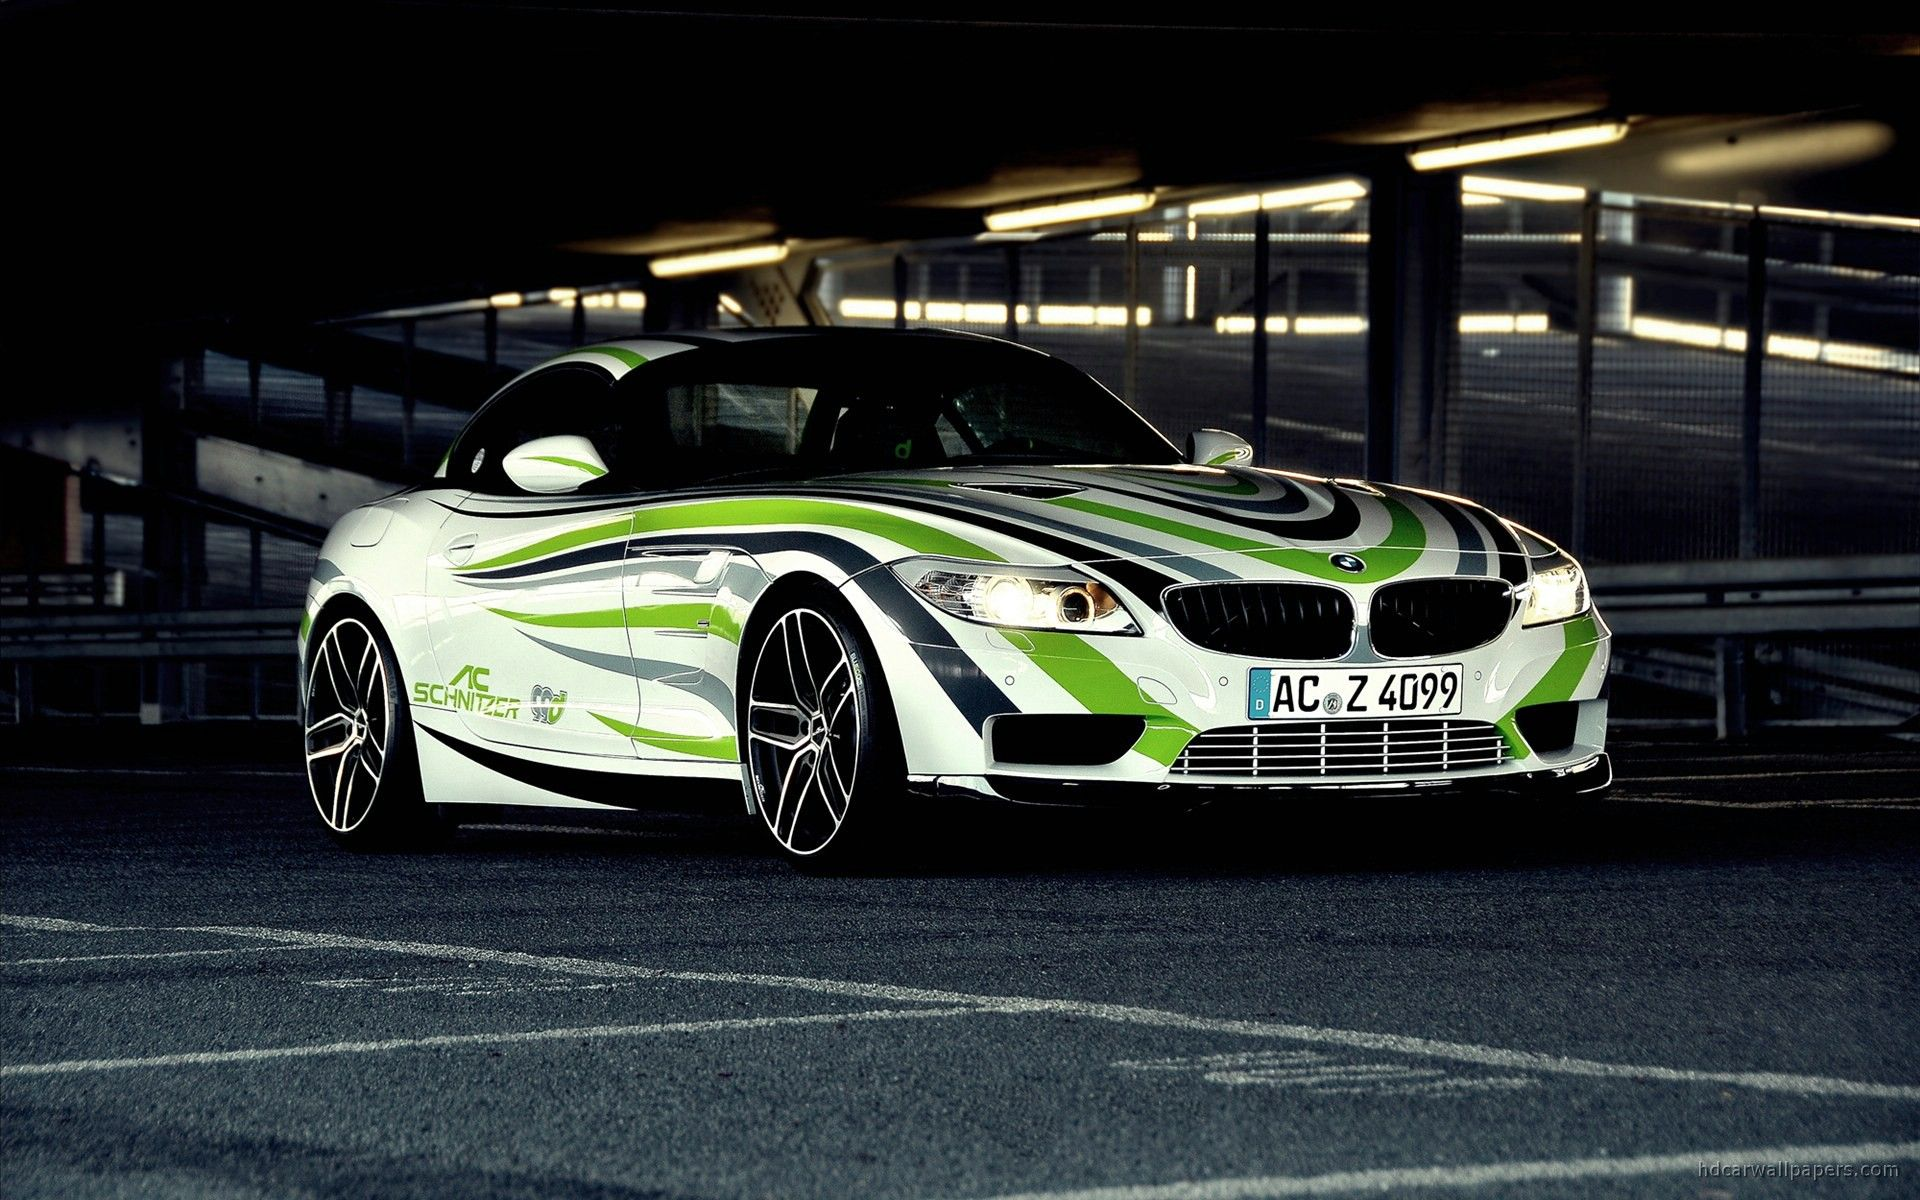 Bmw cars check out these bimmers http germancars desktop backgroundscar